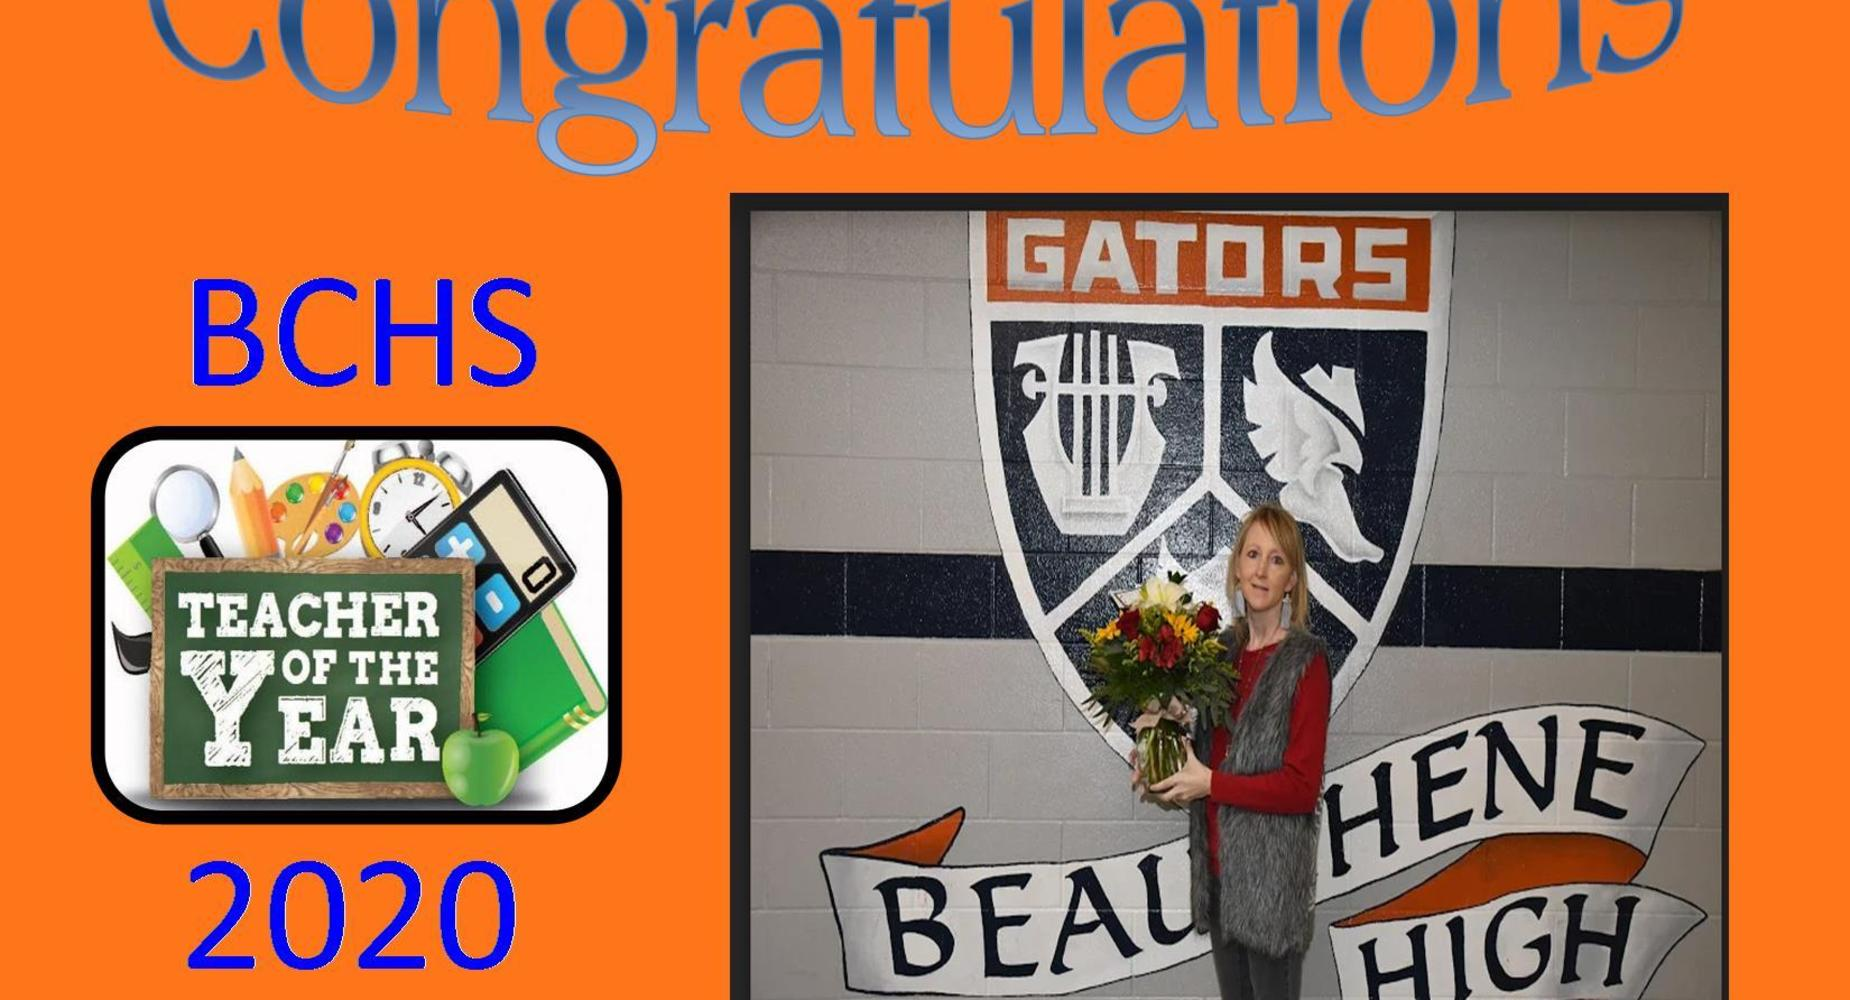 Teacher of the Year 2020 - Mrs. Jennifer Hebert